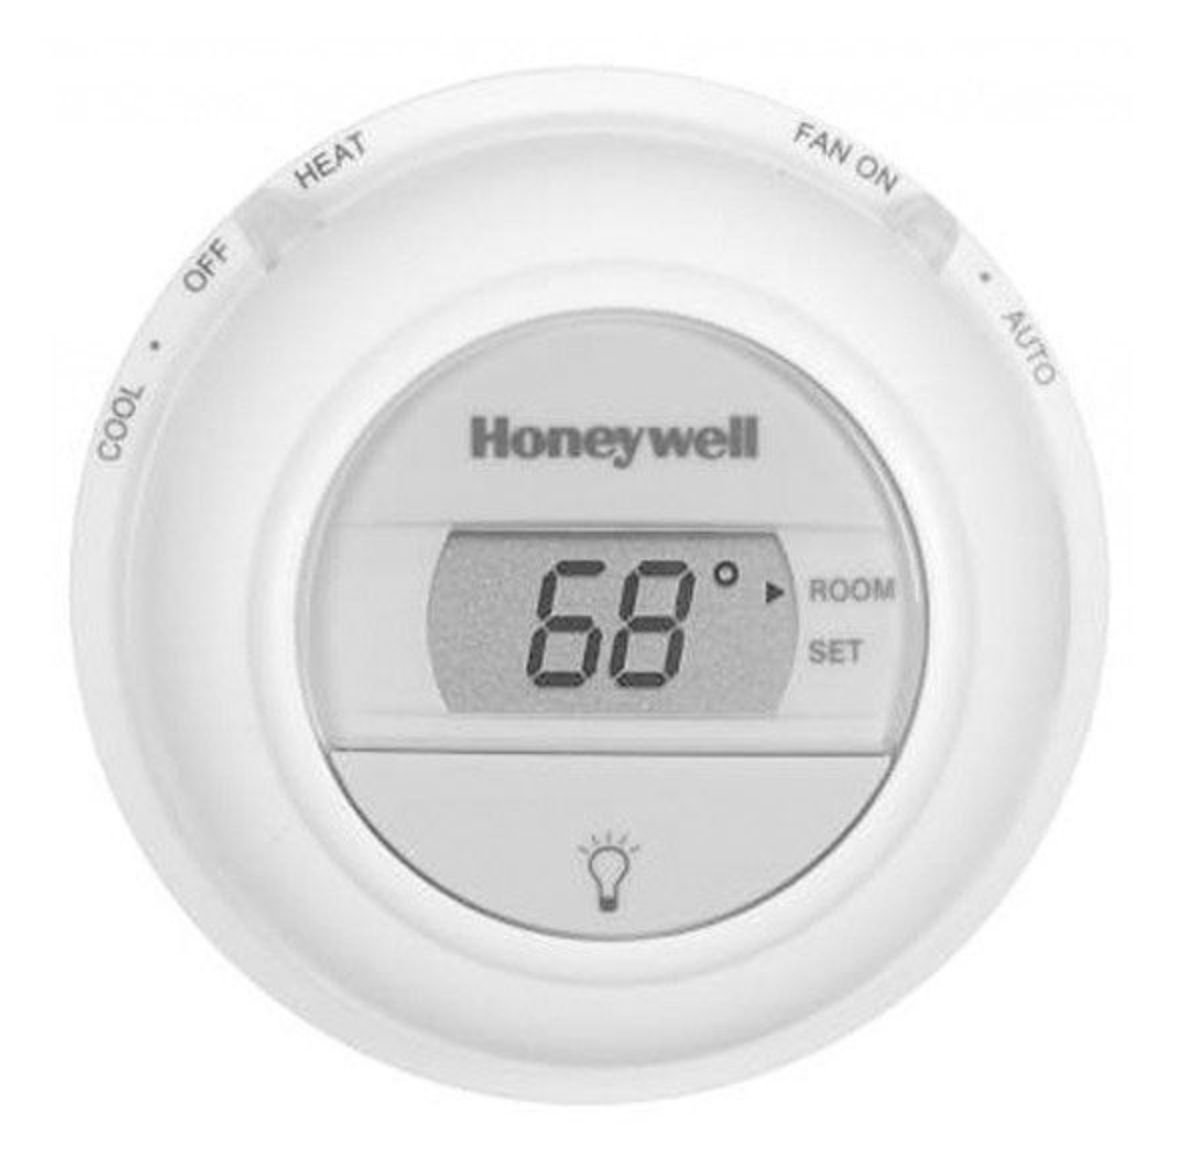 Wiring Diagram On Honeywell Thermostat Wiring Diagram Rth230b